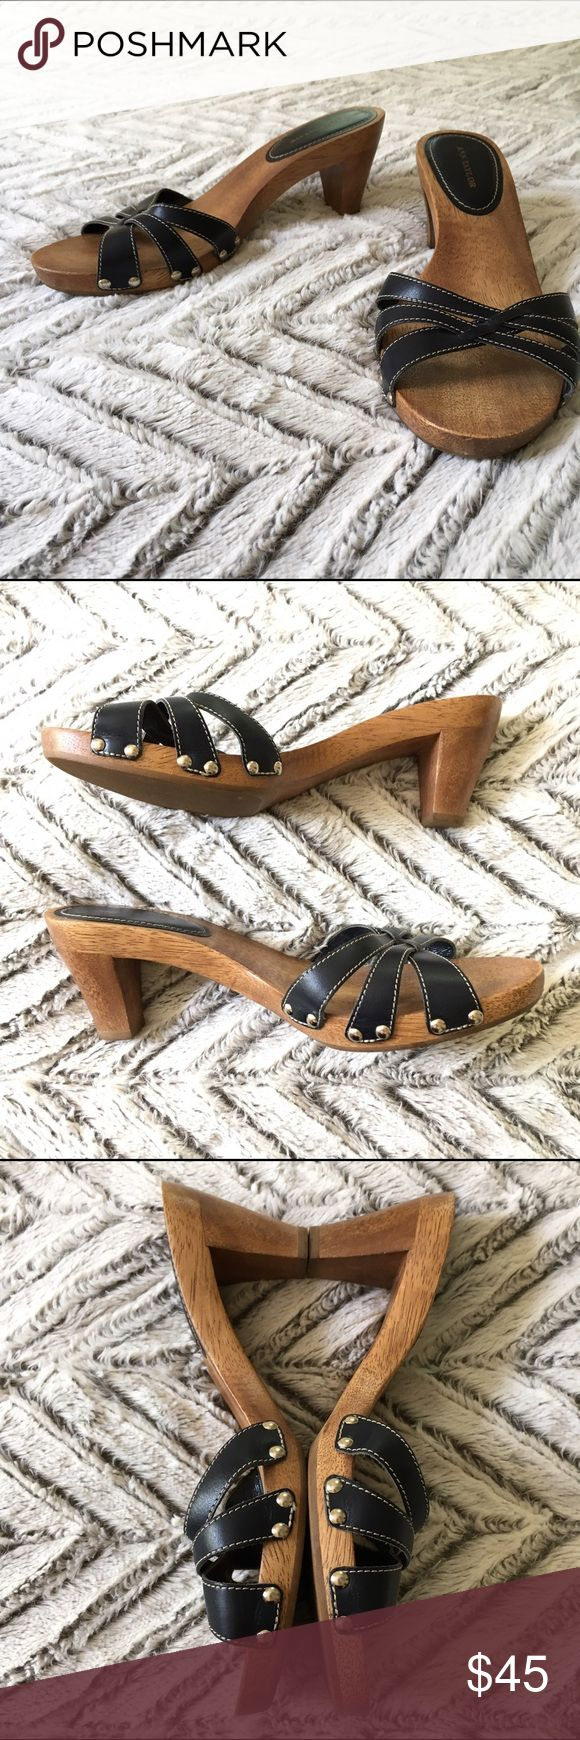 Ann Taylor Black Leather Sandal Heeled Mules 8 Ann Taylor Black woven Leather Sandals with wood grain Heels. Slip-on/slide/mules. Size 8. In excellent pre-owned condition!  🎀Search my closet for your size to: 🎀BUNDLE and SAVE! 🎀NO TRADES NO HOLDS 🎀Thank you for stopping by!❤️ Ann Taylor Shoes Mules & Clogs